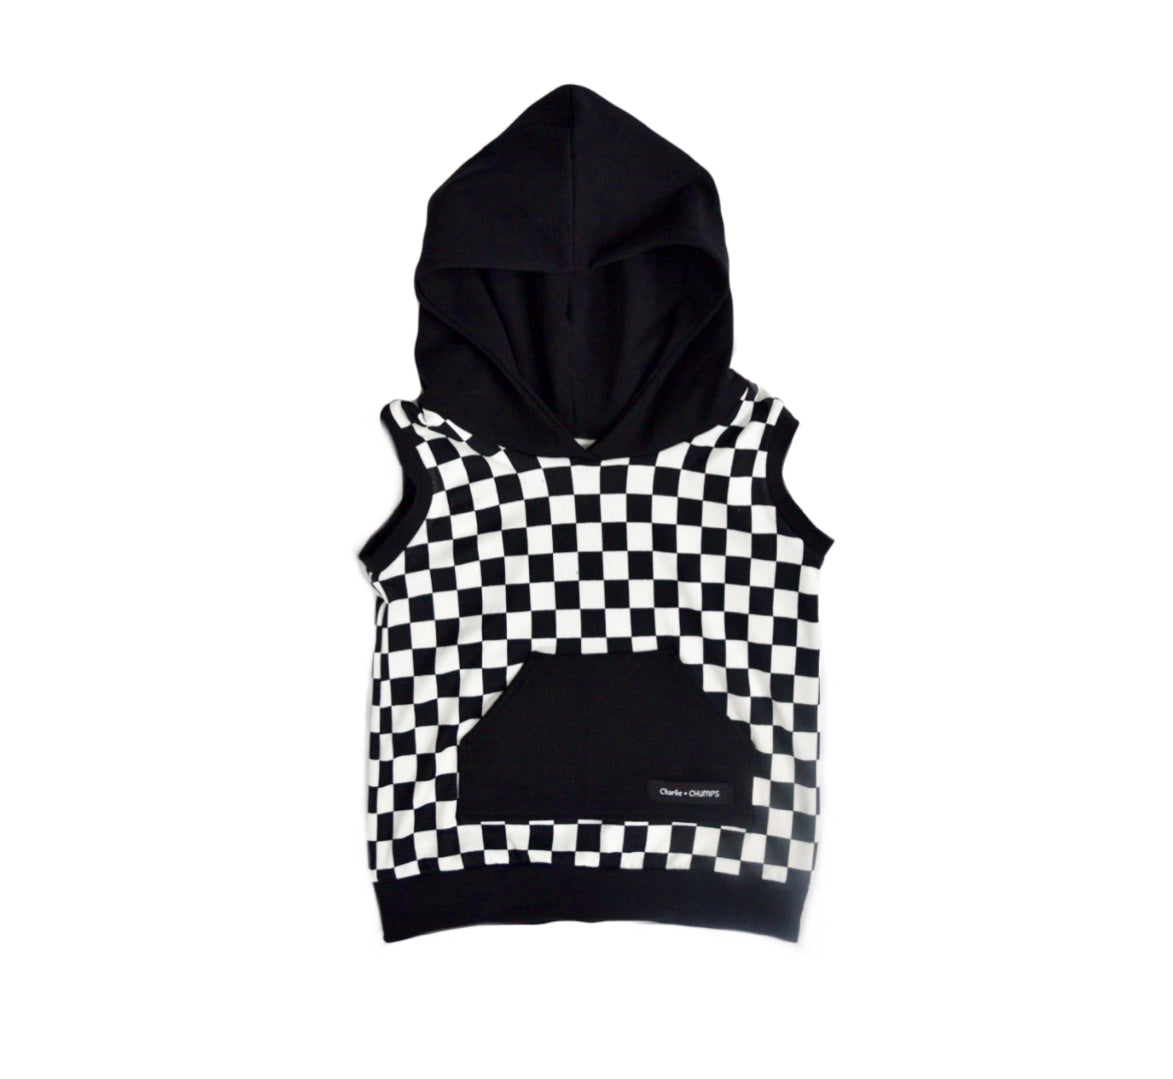 Checkered Hooded Sweatshirt